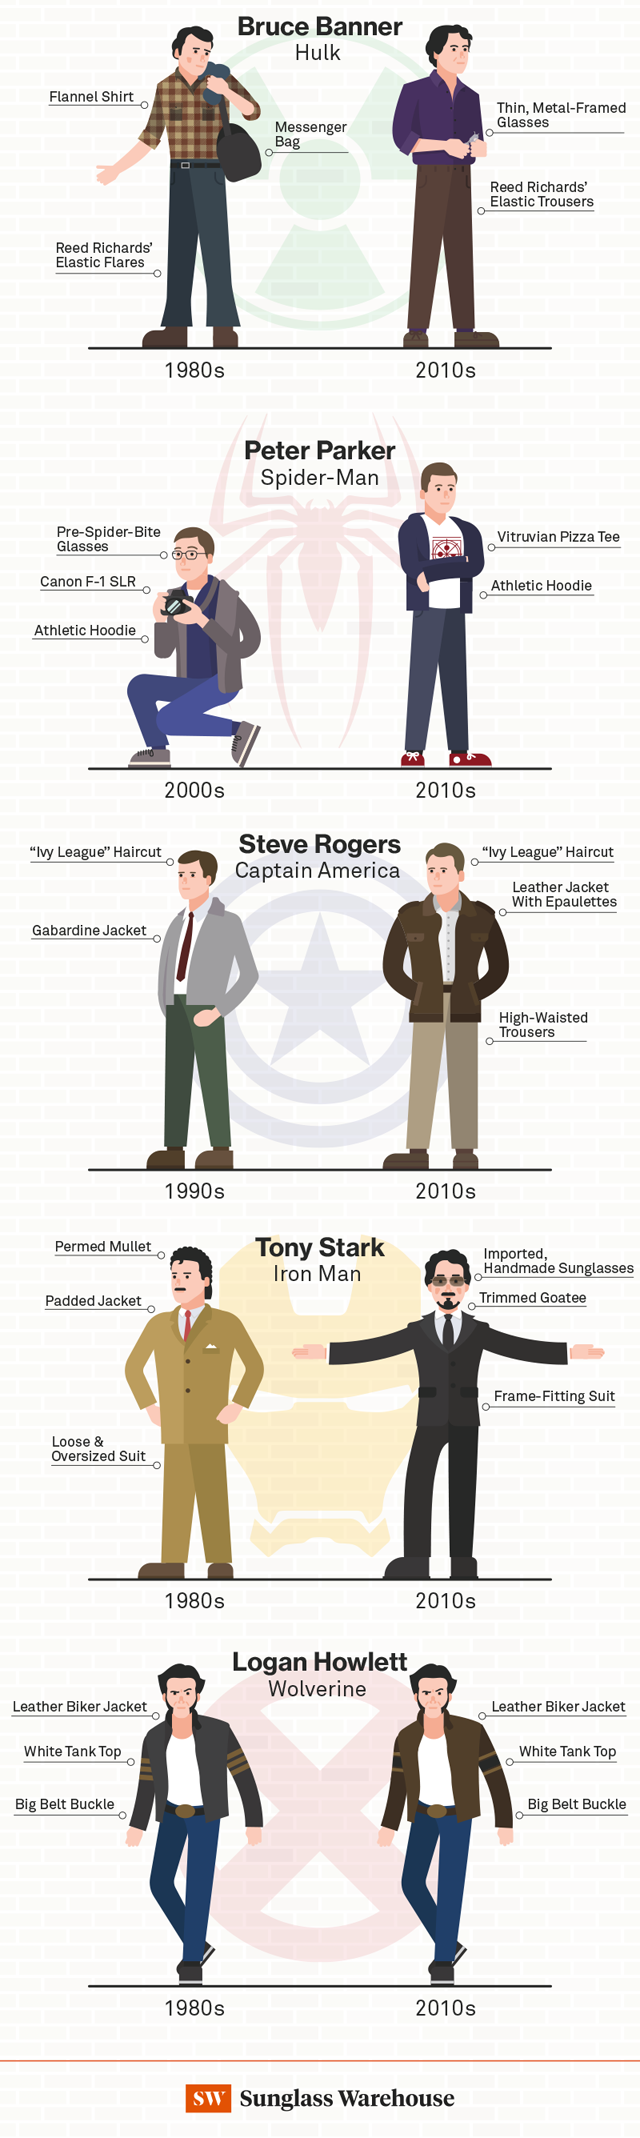 The Evolution of Off-Duty Superhero Fashion